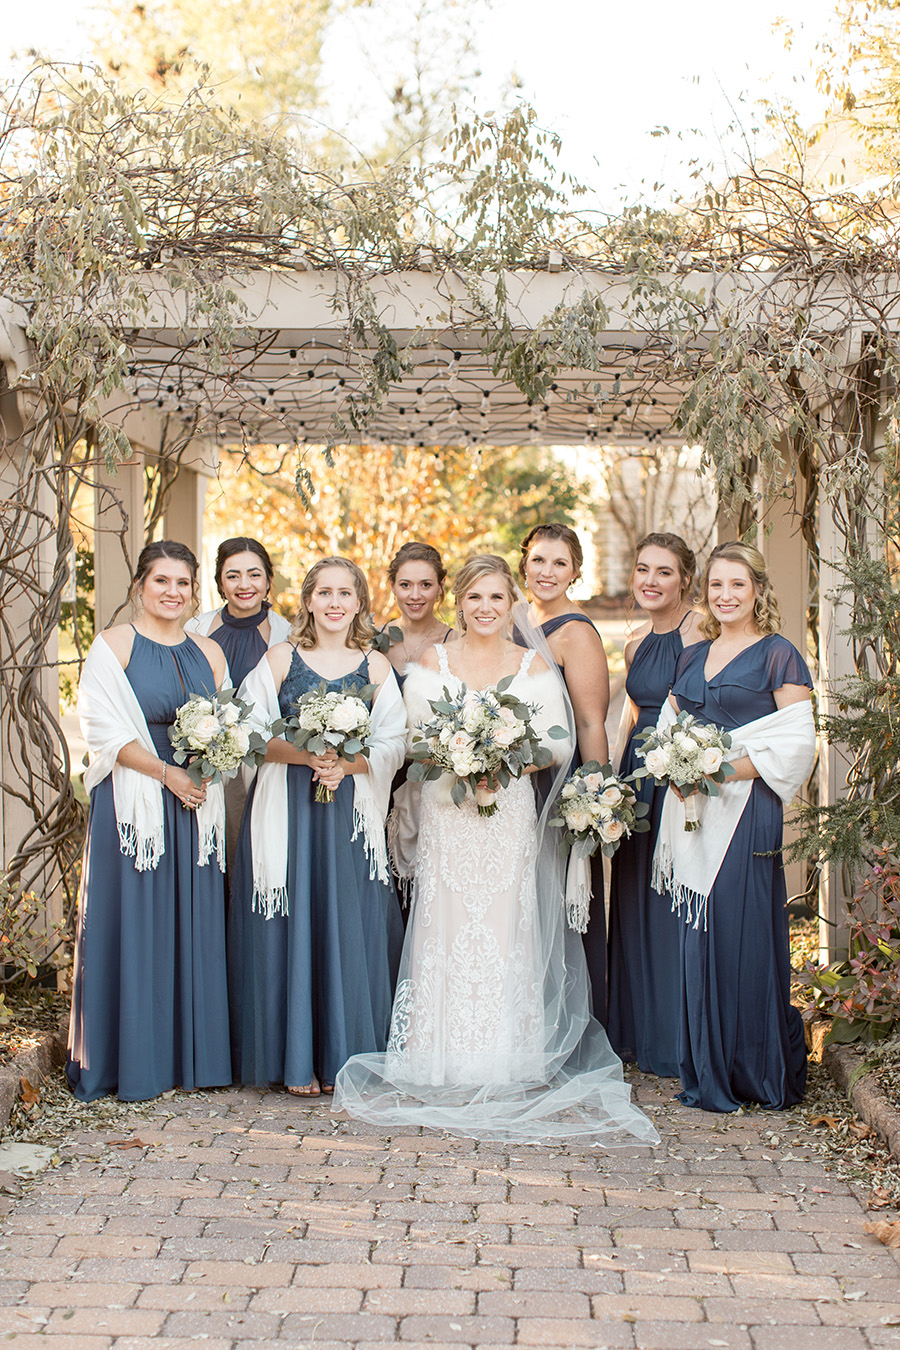 Bride and her bridesmaids in long winter blue dresses and shawls